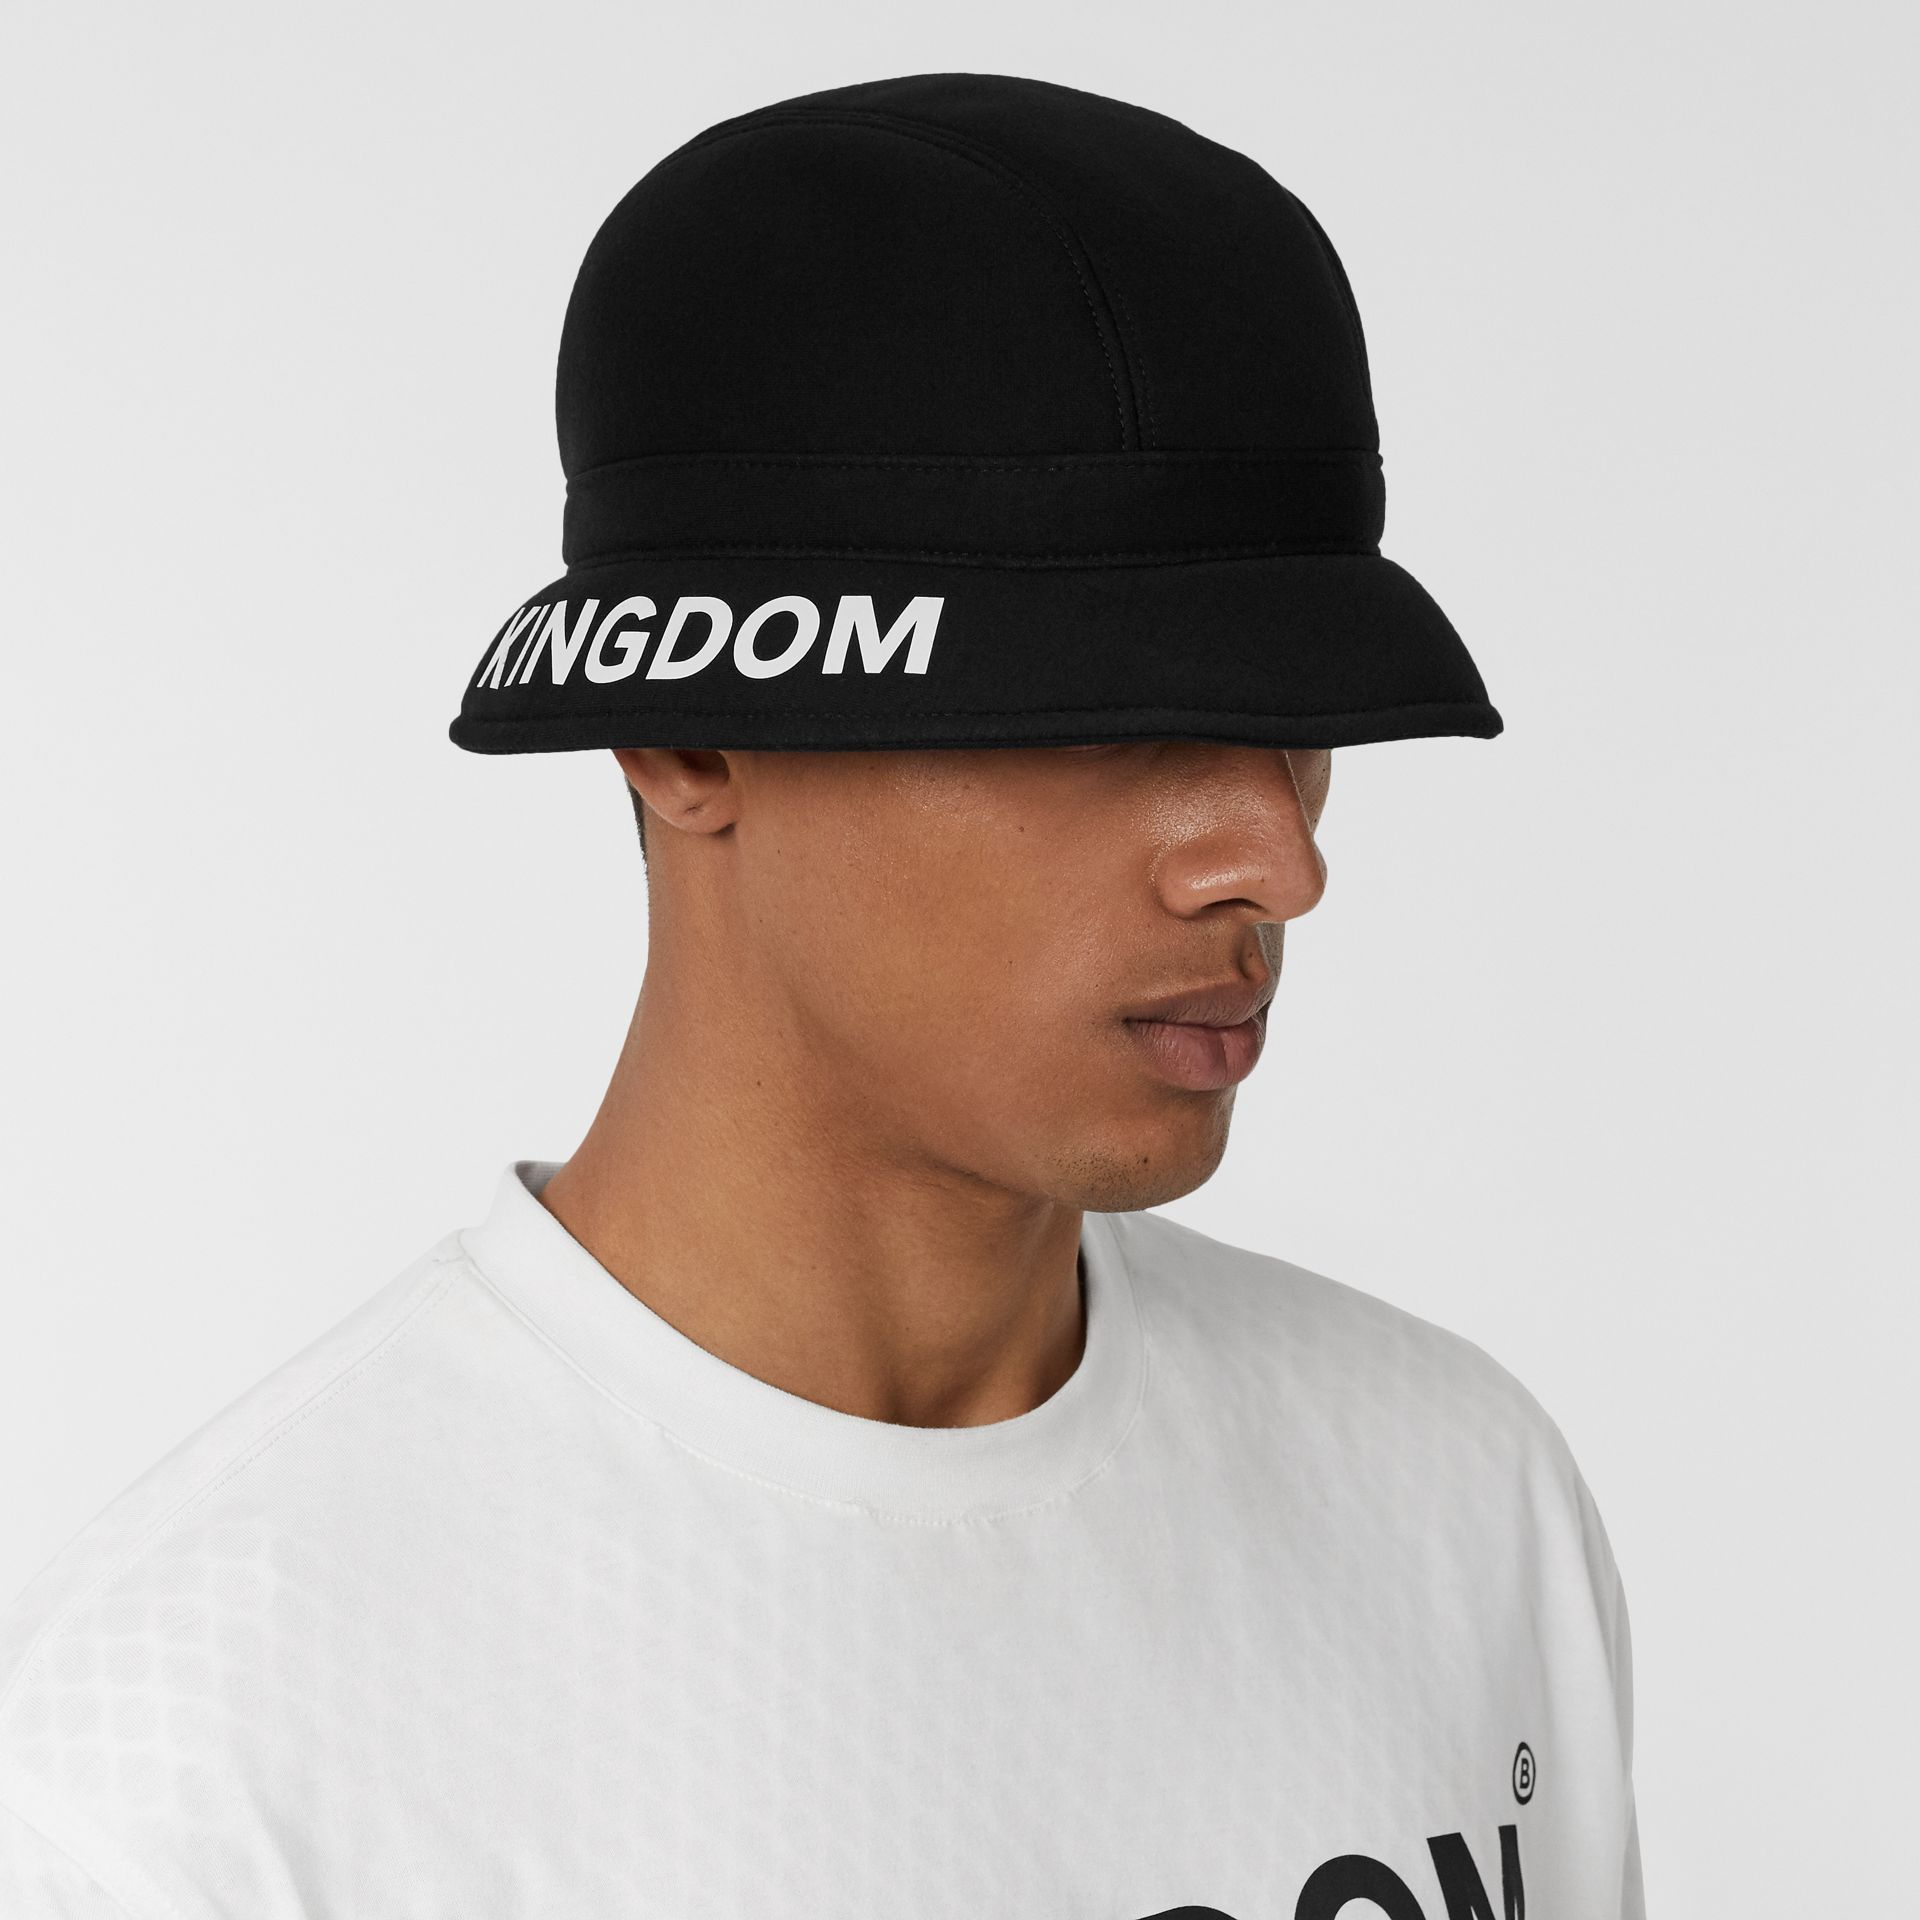 Kingdom Print Neoprene Bucket Hat in Black | Burberry - gallery image 6